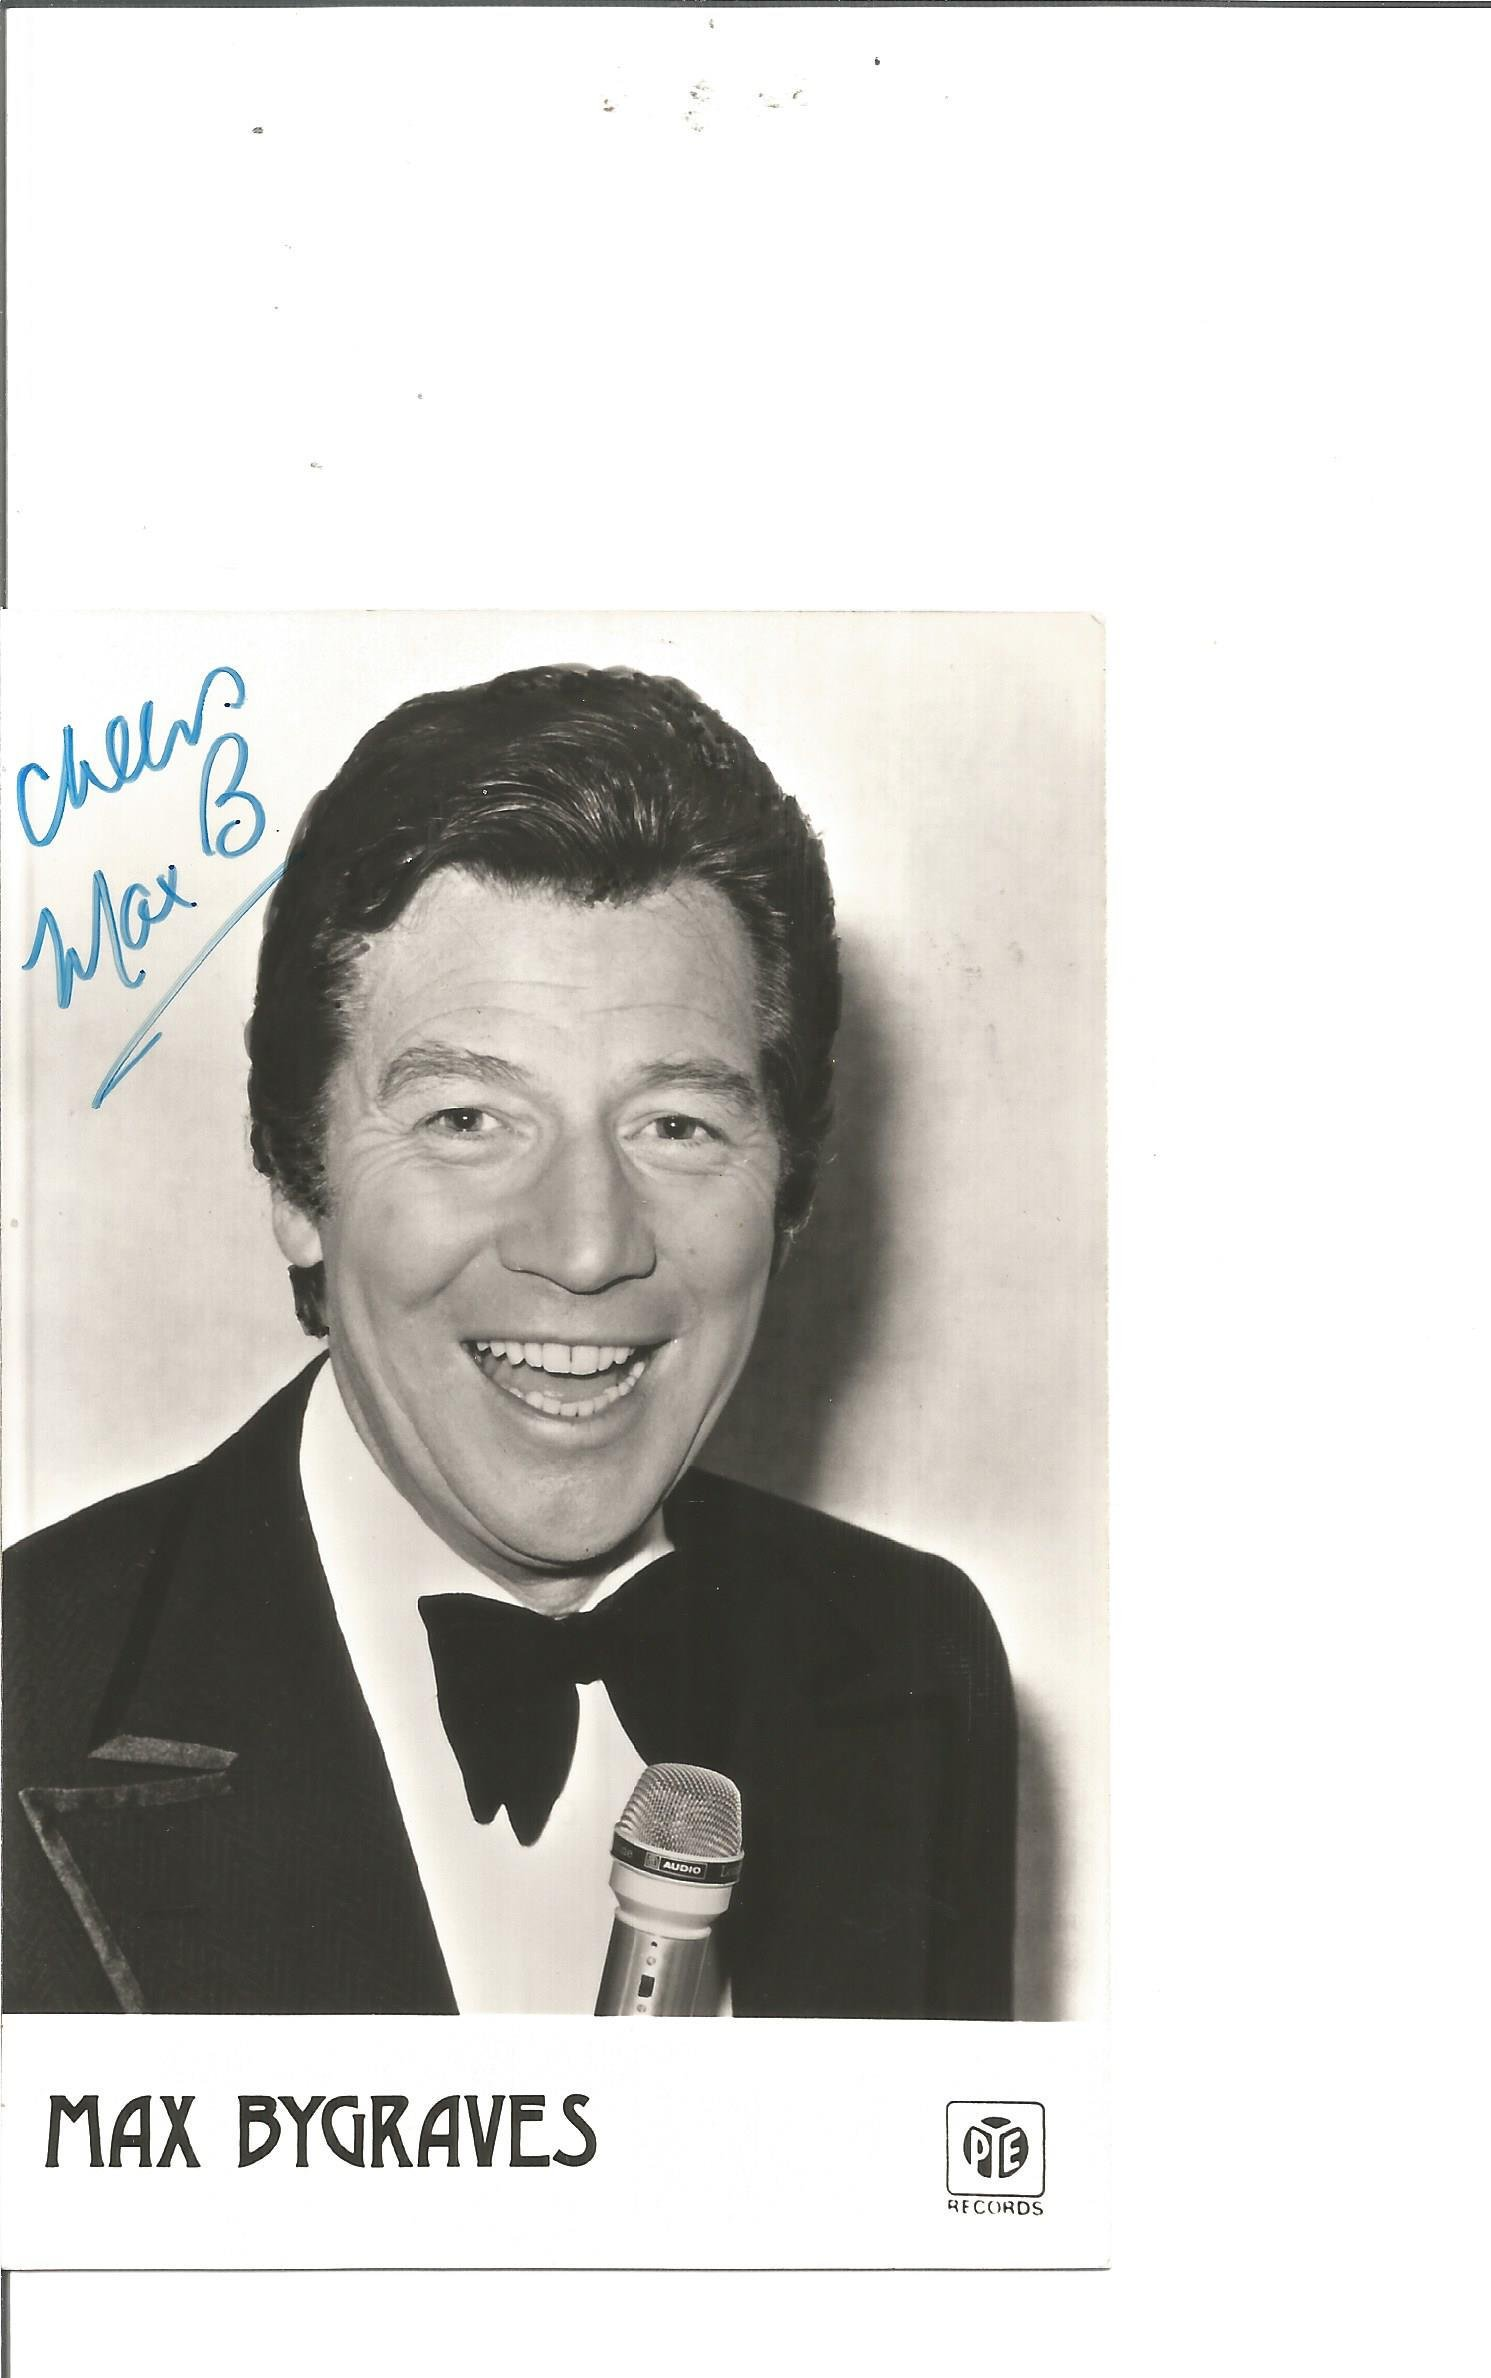 Max Bygraves signed 6x4 black and white photo. Good